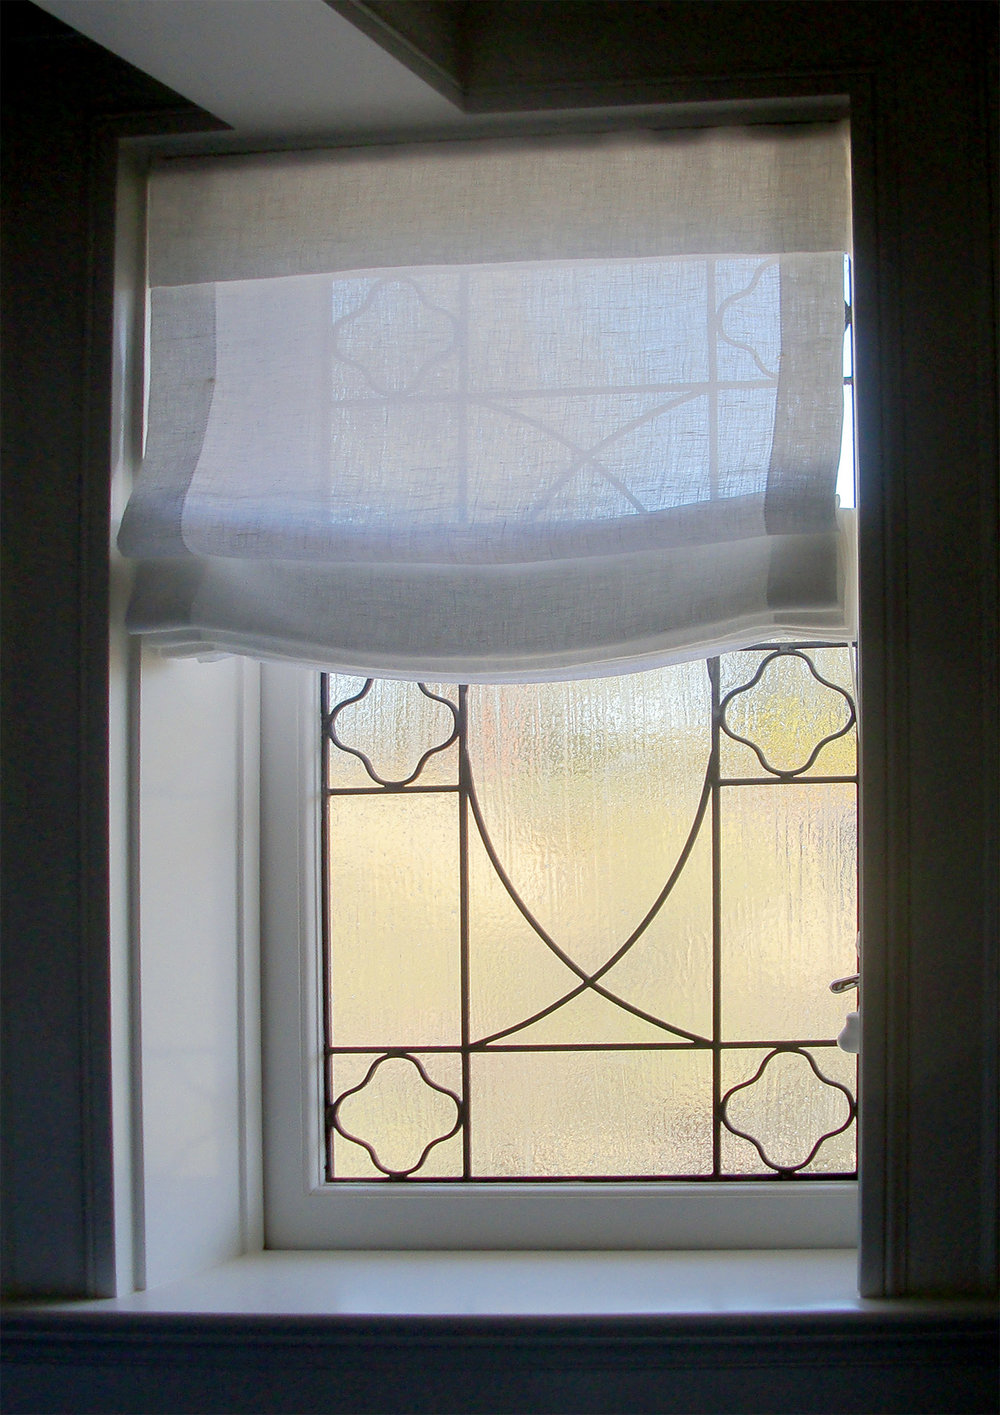 traditional clear texture leaded glass stained glass window palo alto atherton california san francisco san jose legacy glass2.jpg